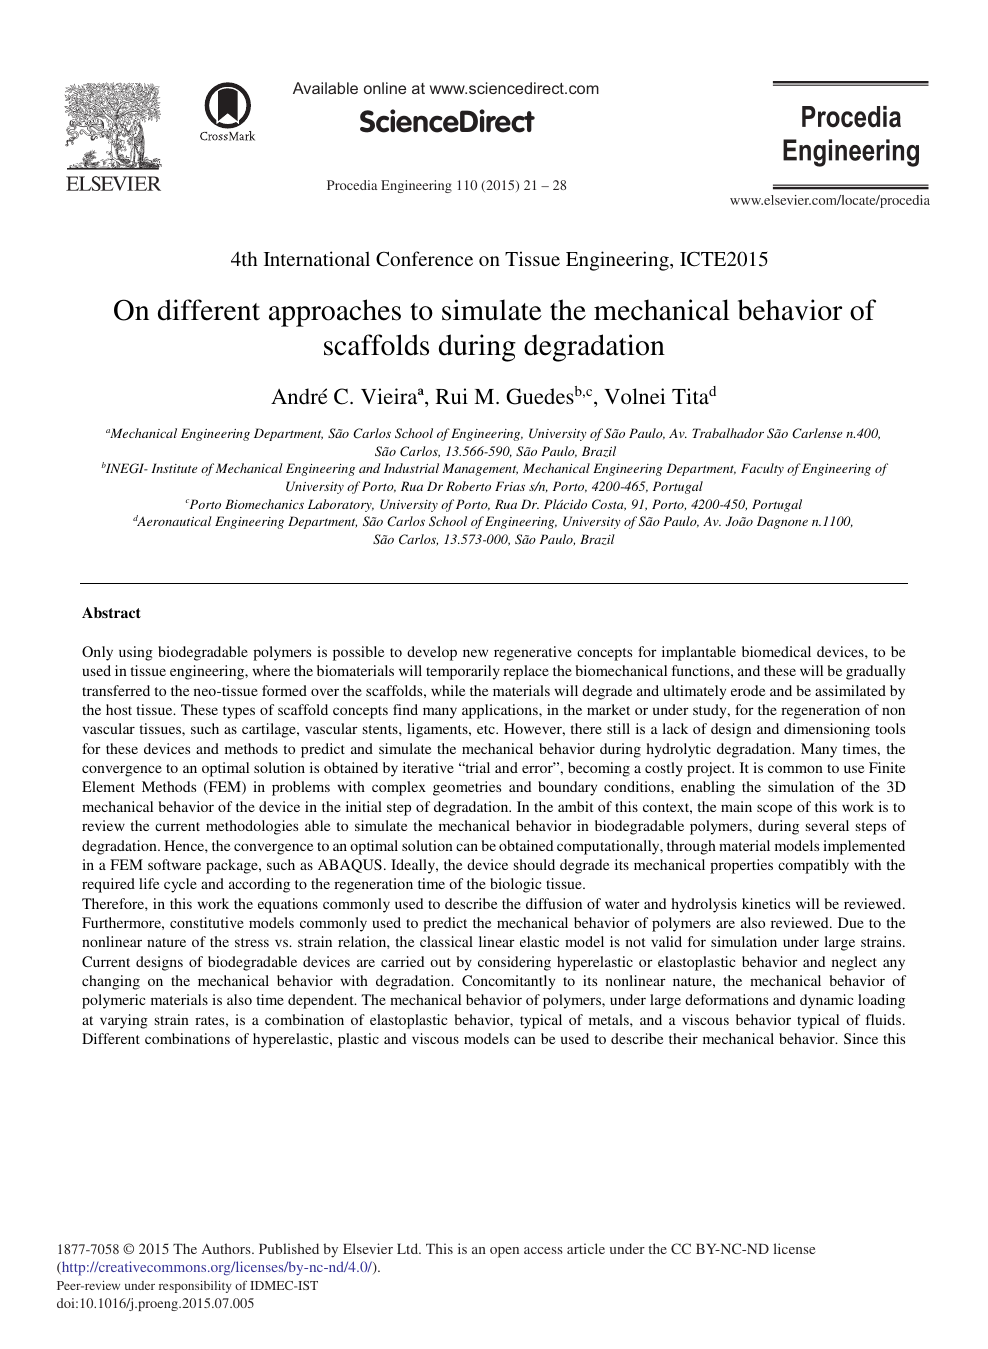 On Different Approaches to Simulate the Mechanical Behavior